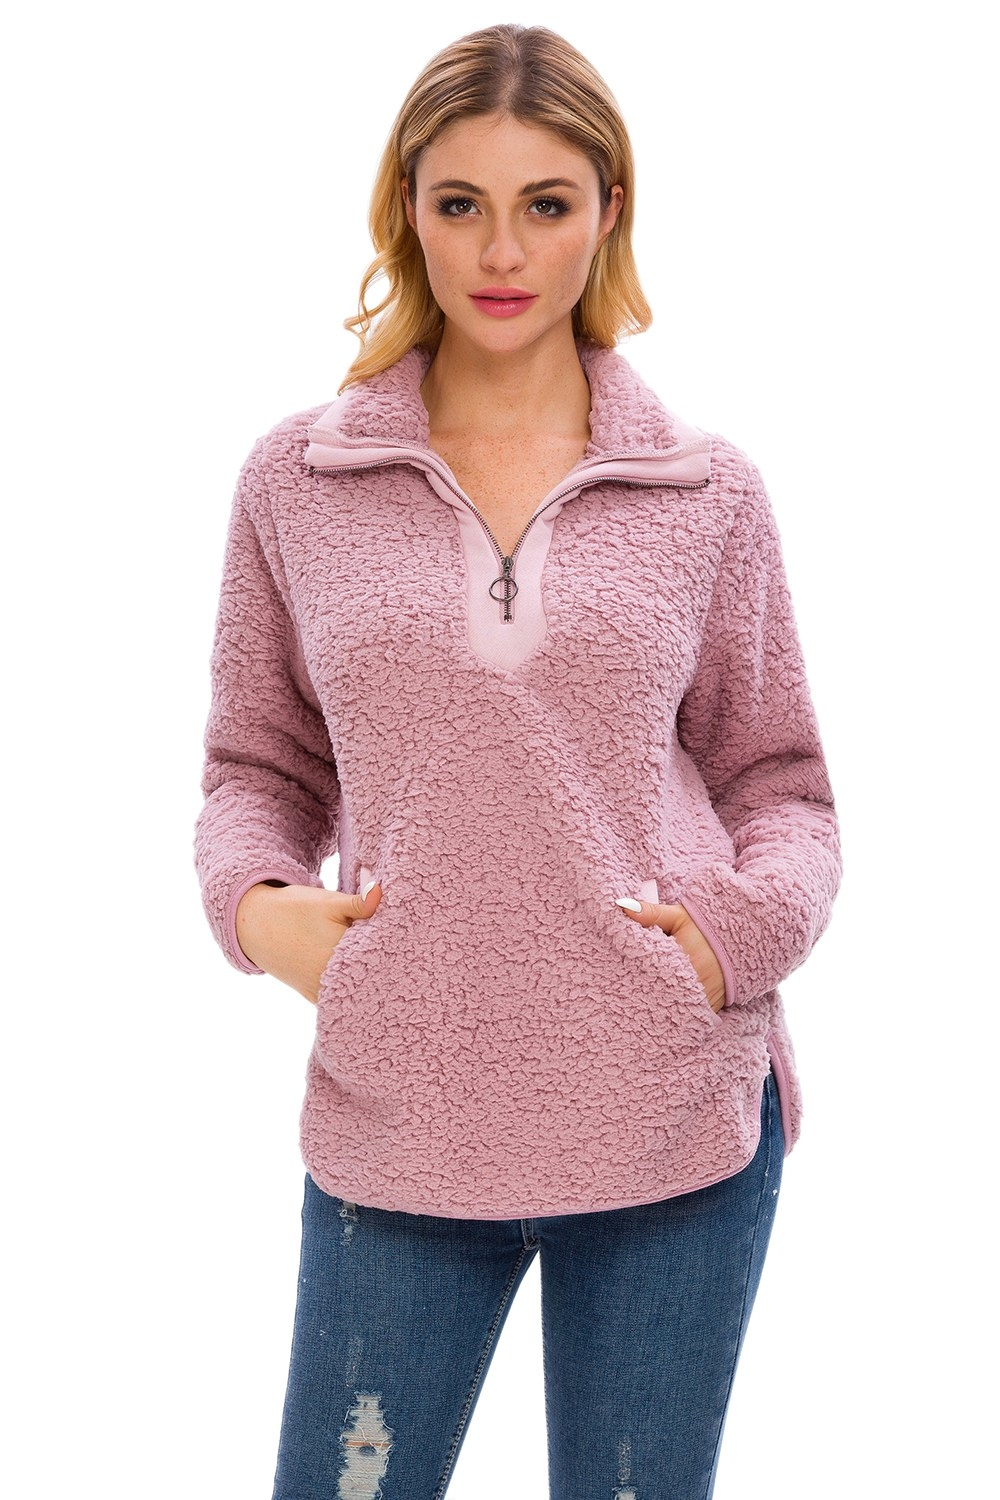 the pink sherpa pulloever